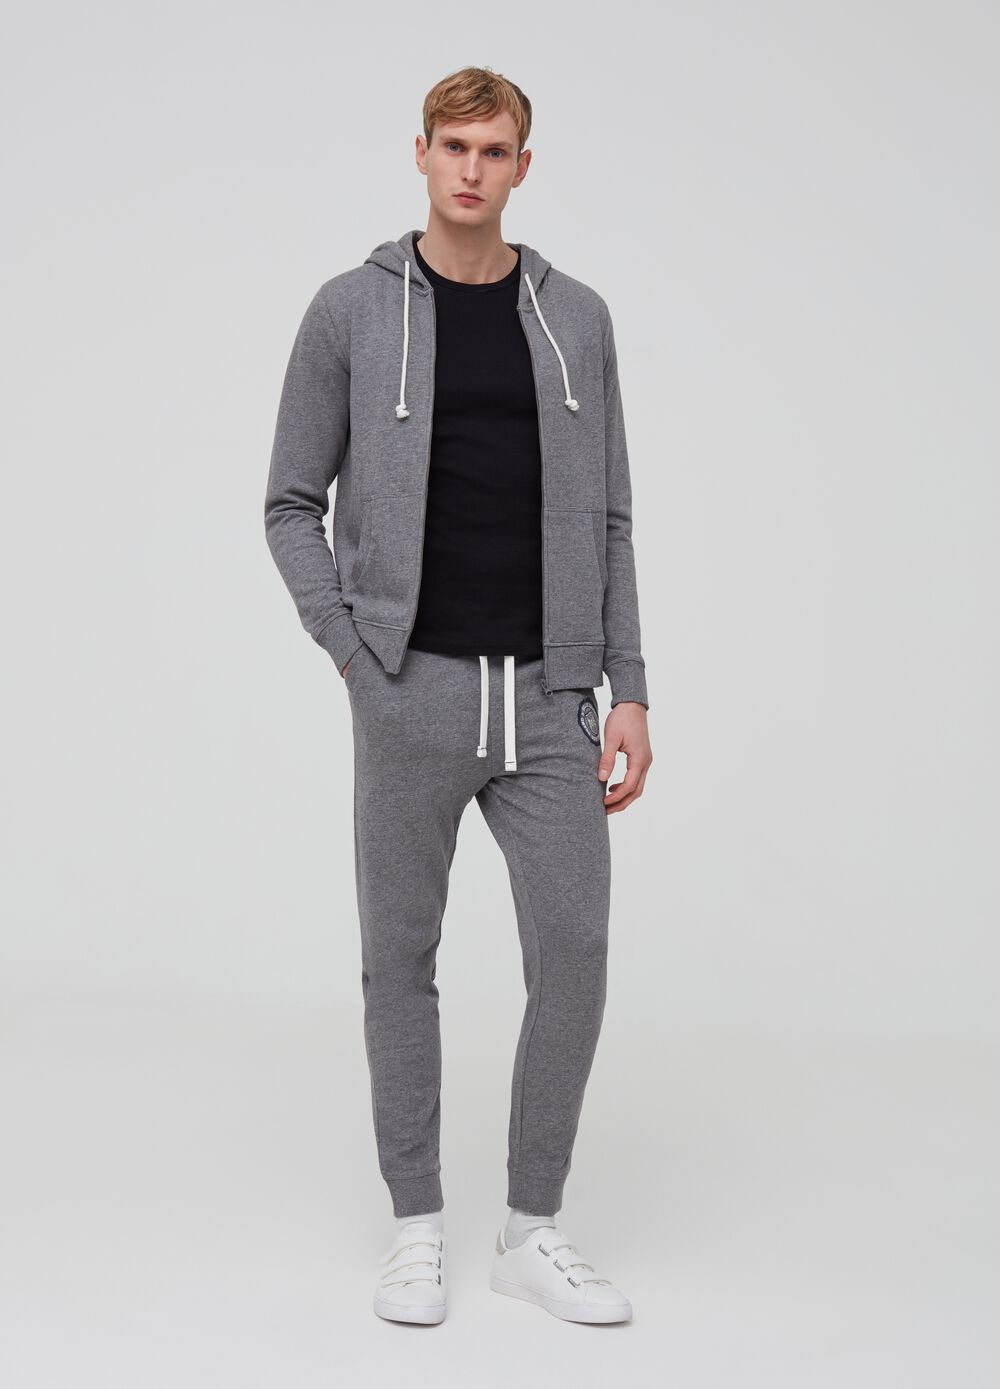 Viscose and organic cotton jogger trousers